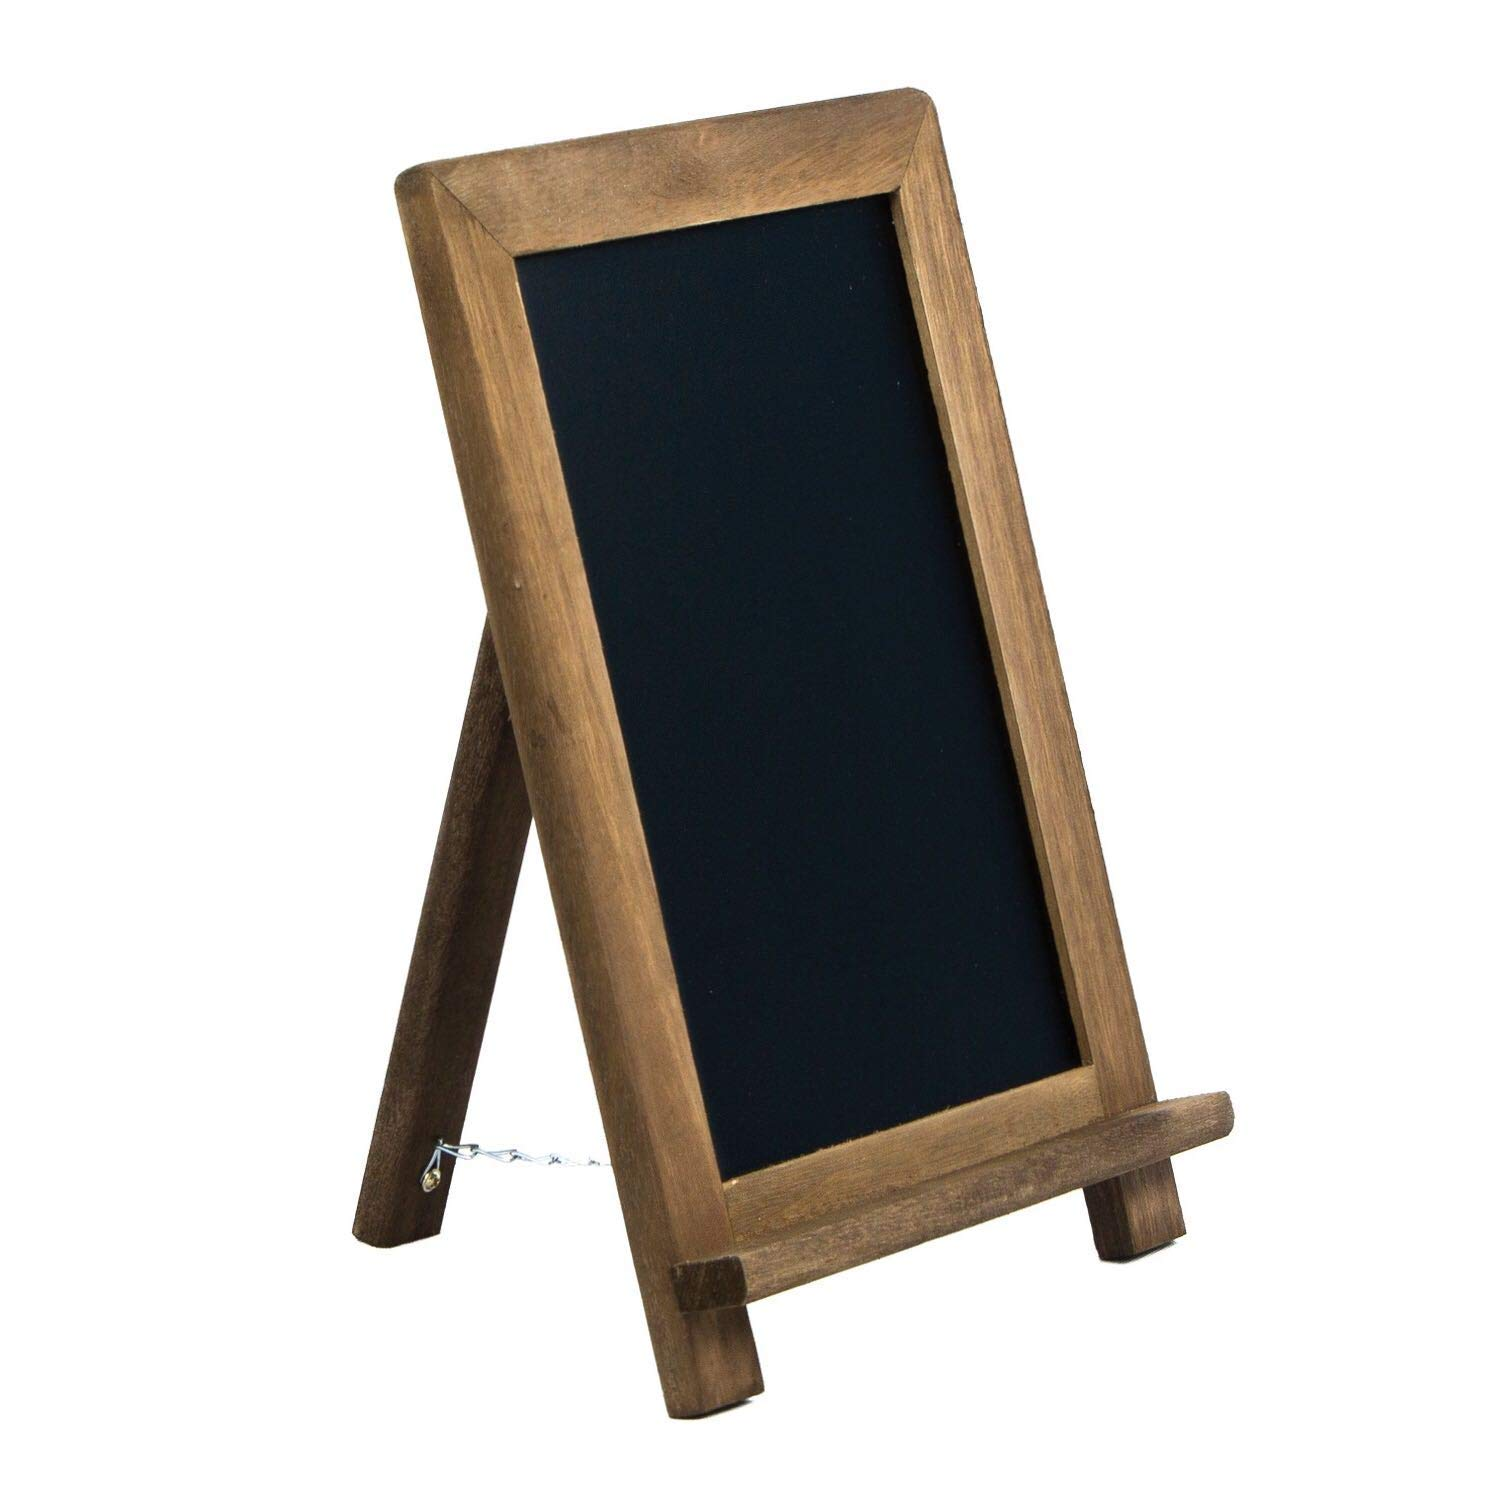 Small Rustic Table Top Chalkboard Easel Sign with Stand by VersaChalk - Farmhouse Wood Frame and Magnetic Chalk Board Compatible with Liquid Chalk Markers - 13 x 9 Inches by VersaChalk